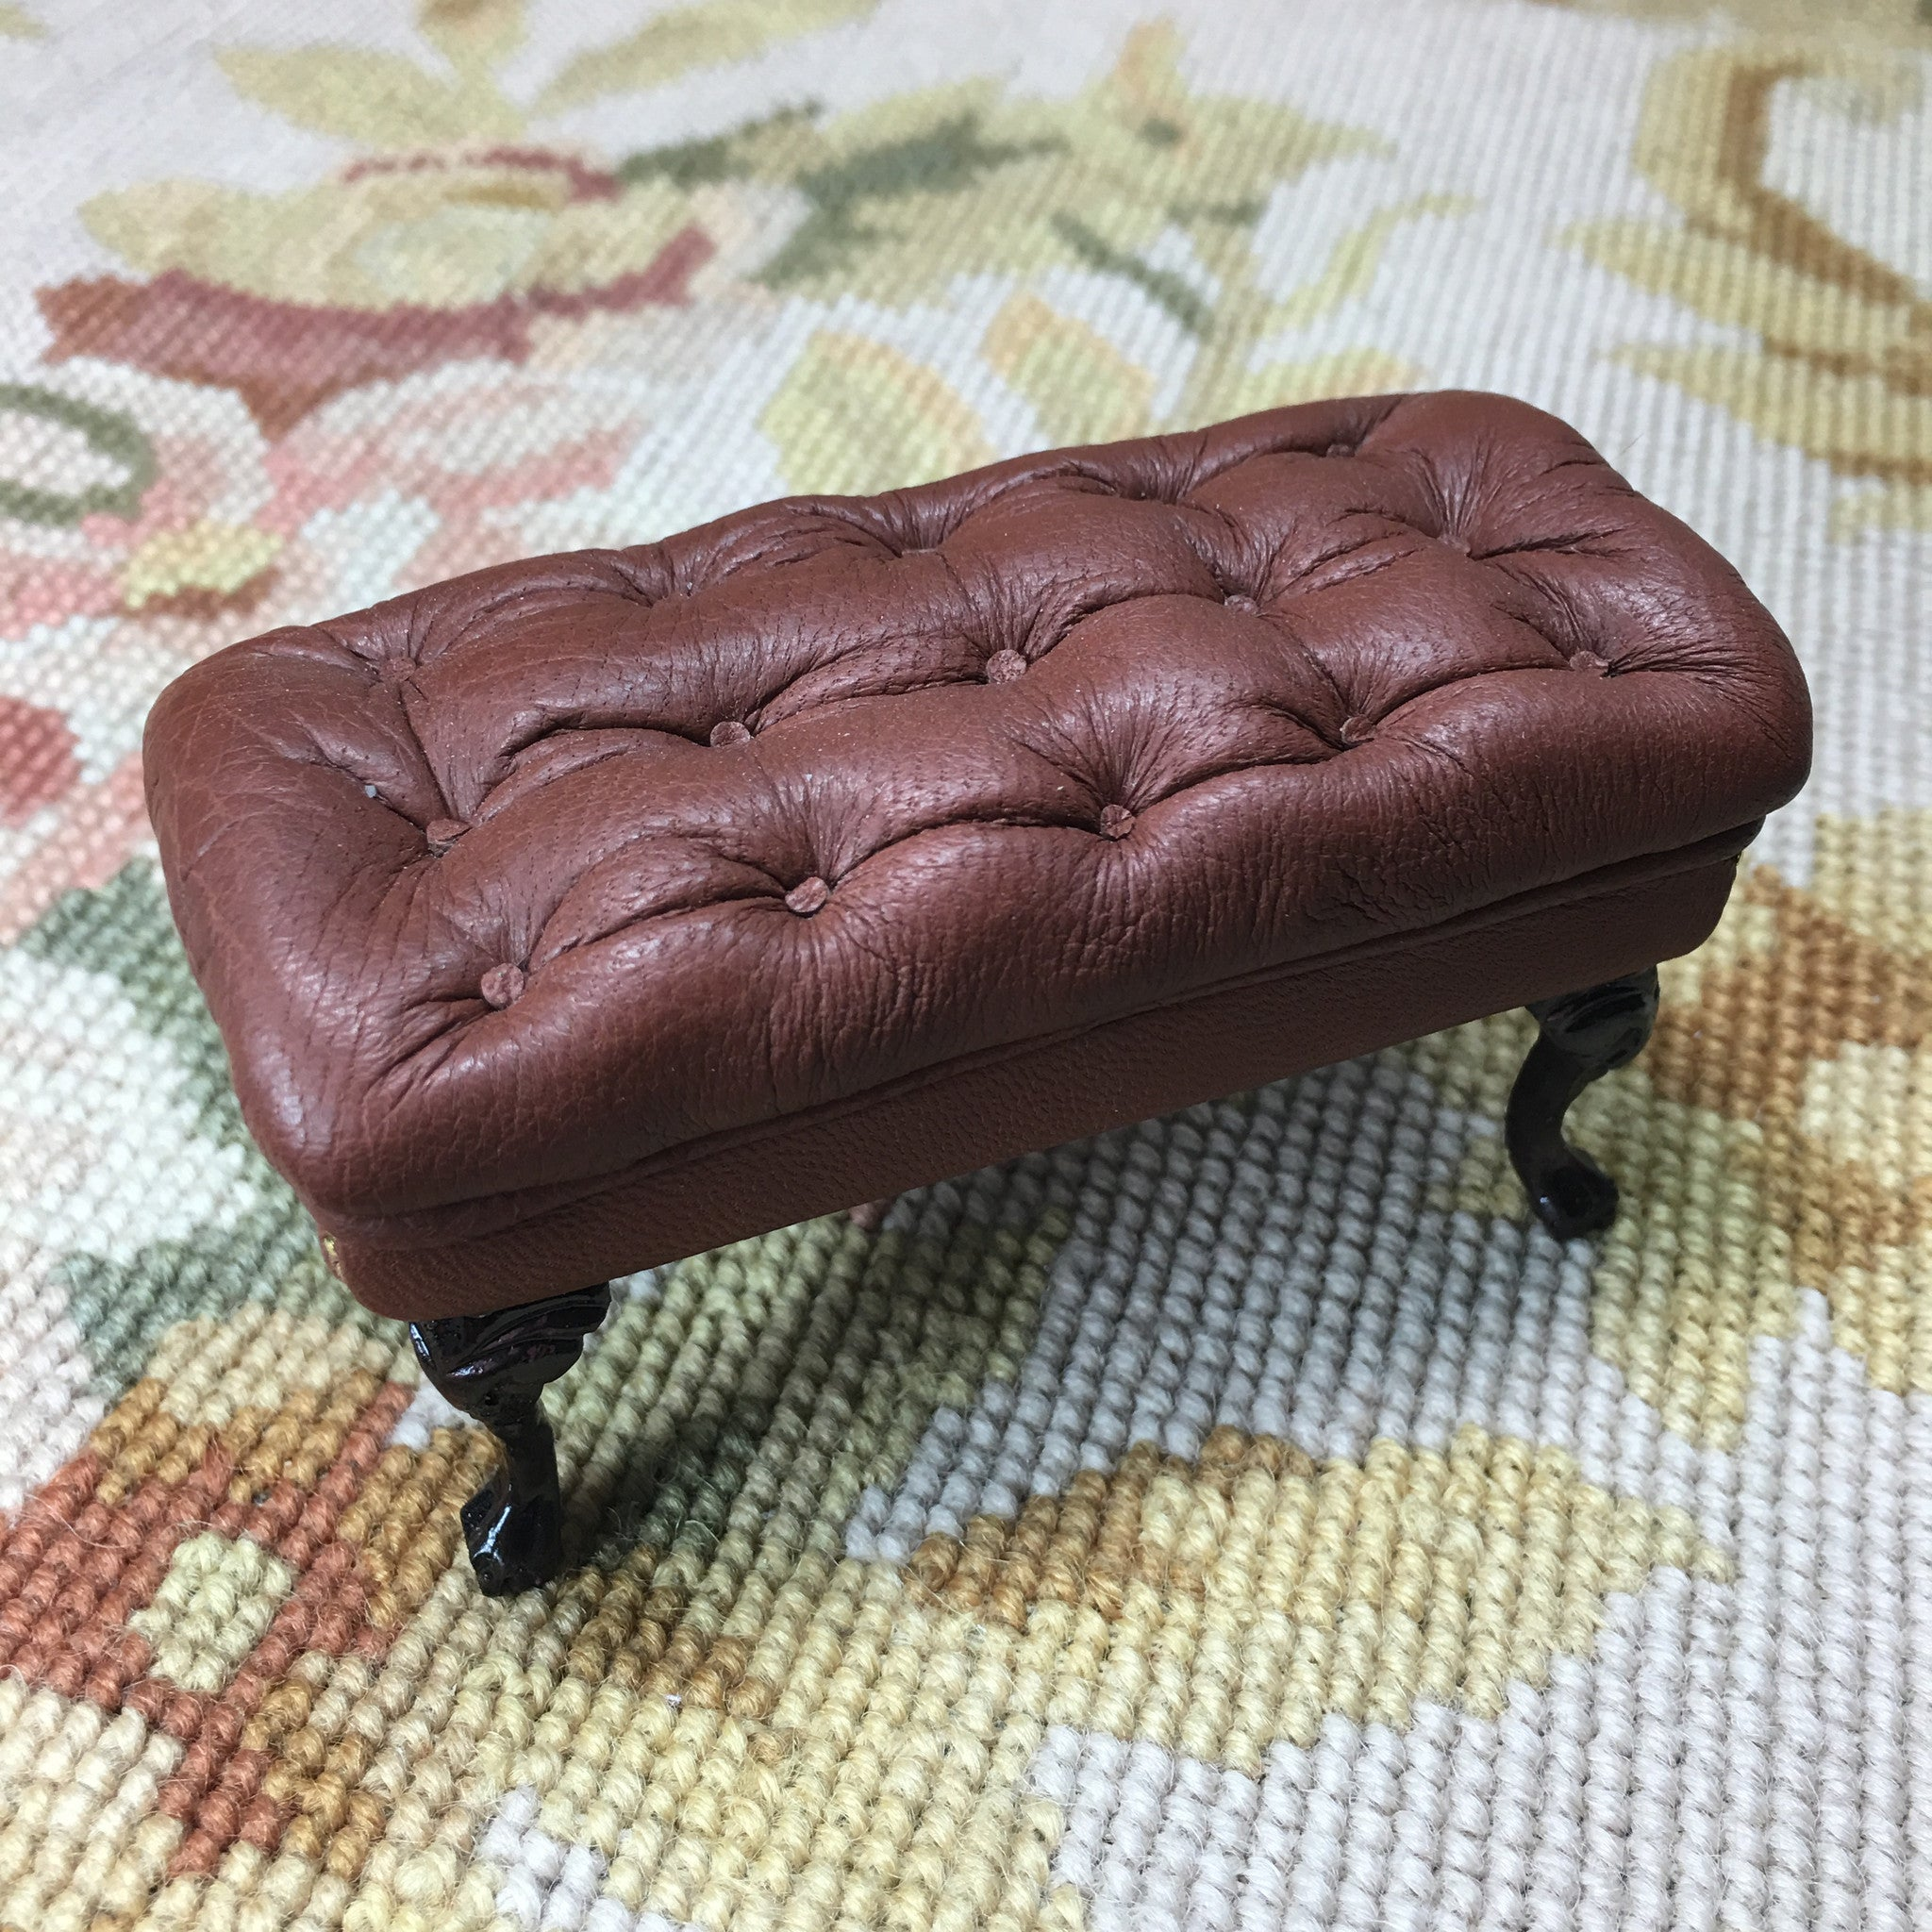 Stool Ottoman Seat Table Leather 1:12 Scale SPECIAL ORDER Dollhouse Miniature